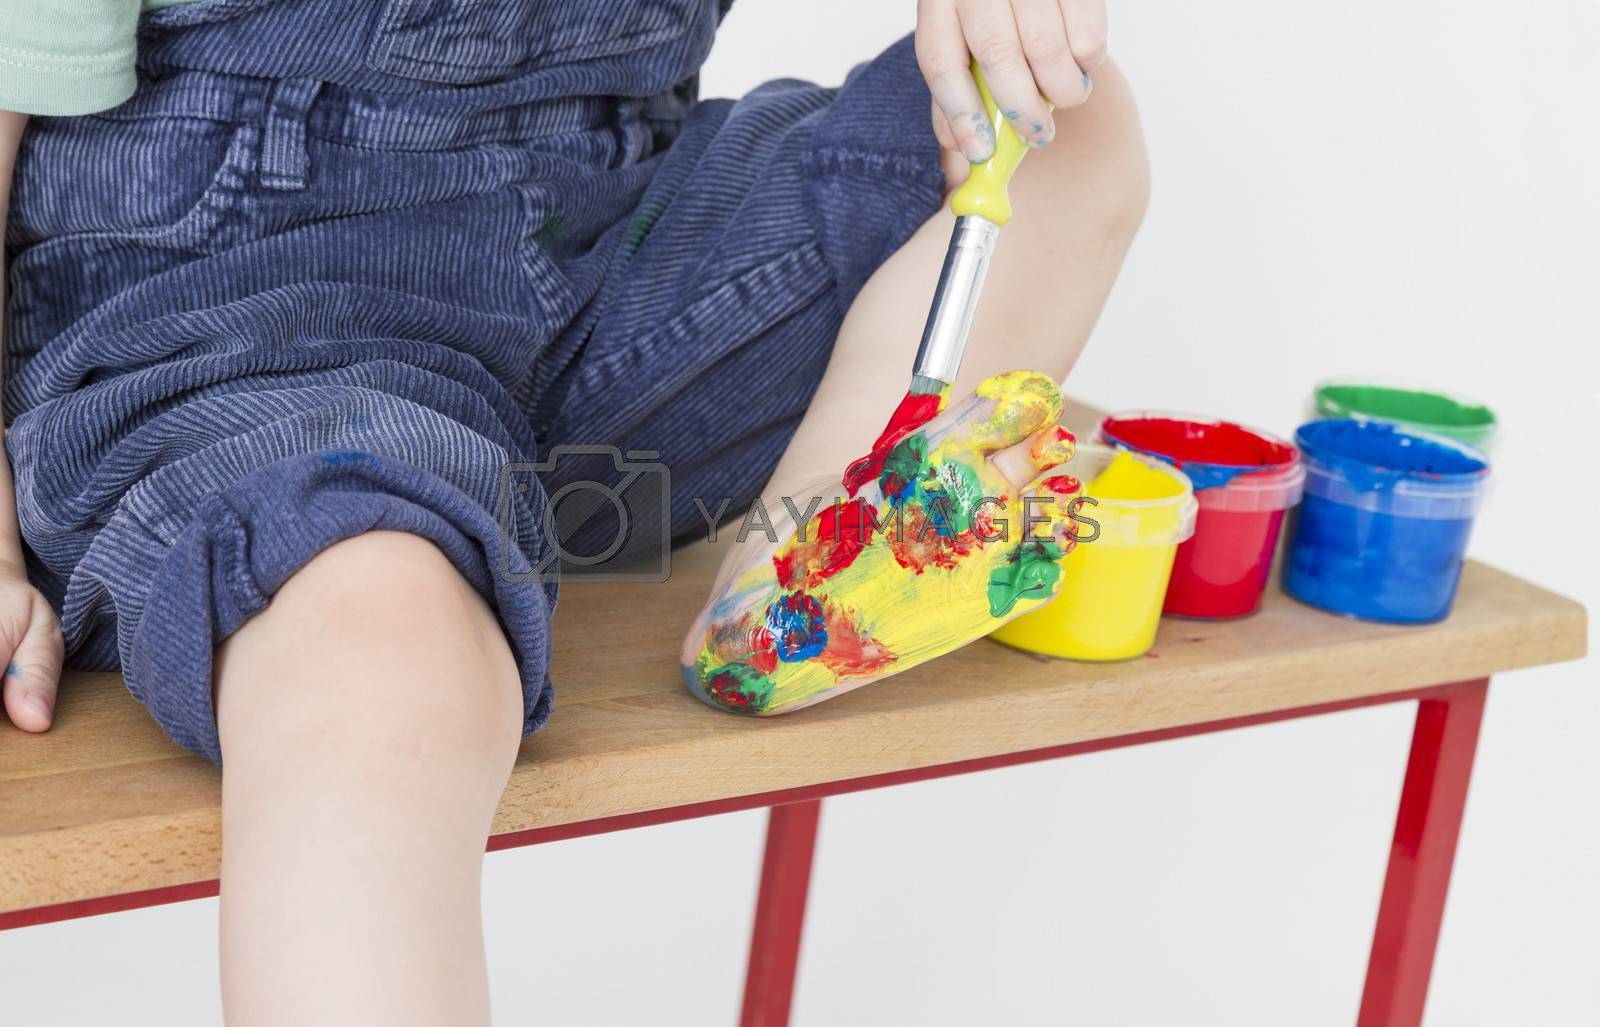 Royalty free image of foot of child colorful painted by gewoldi